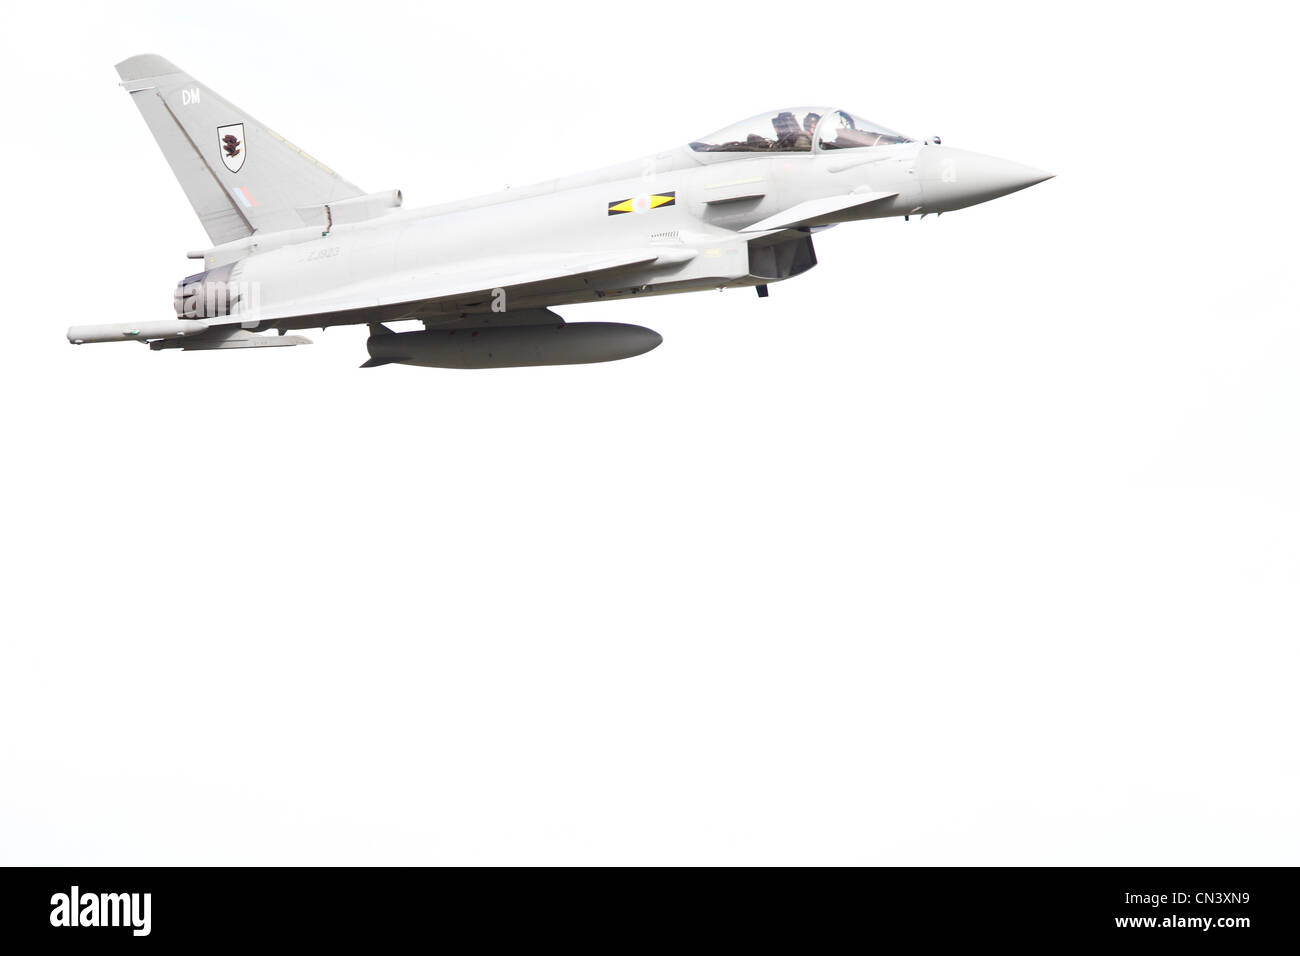 Eurofighter EF-2000 Typhoon FGR4 Royal Air Force ZJ923. Eurofighter Typhoon is a twin-engine, canard-delta wing, - Stock Image